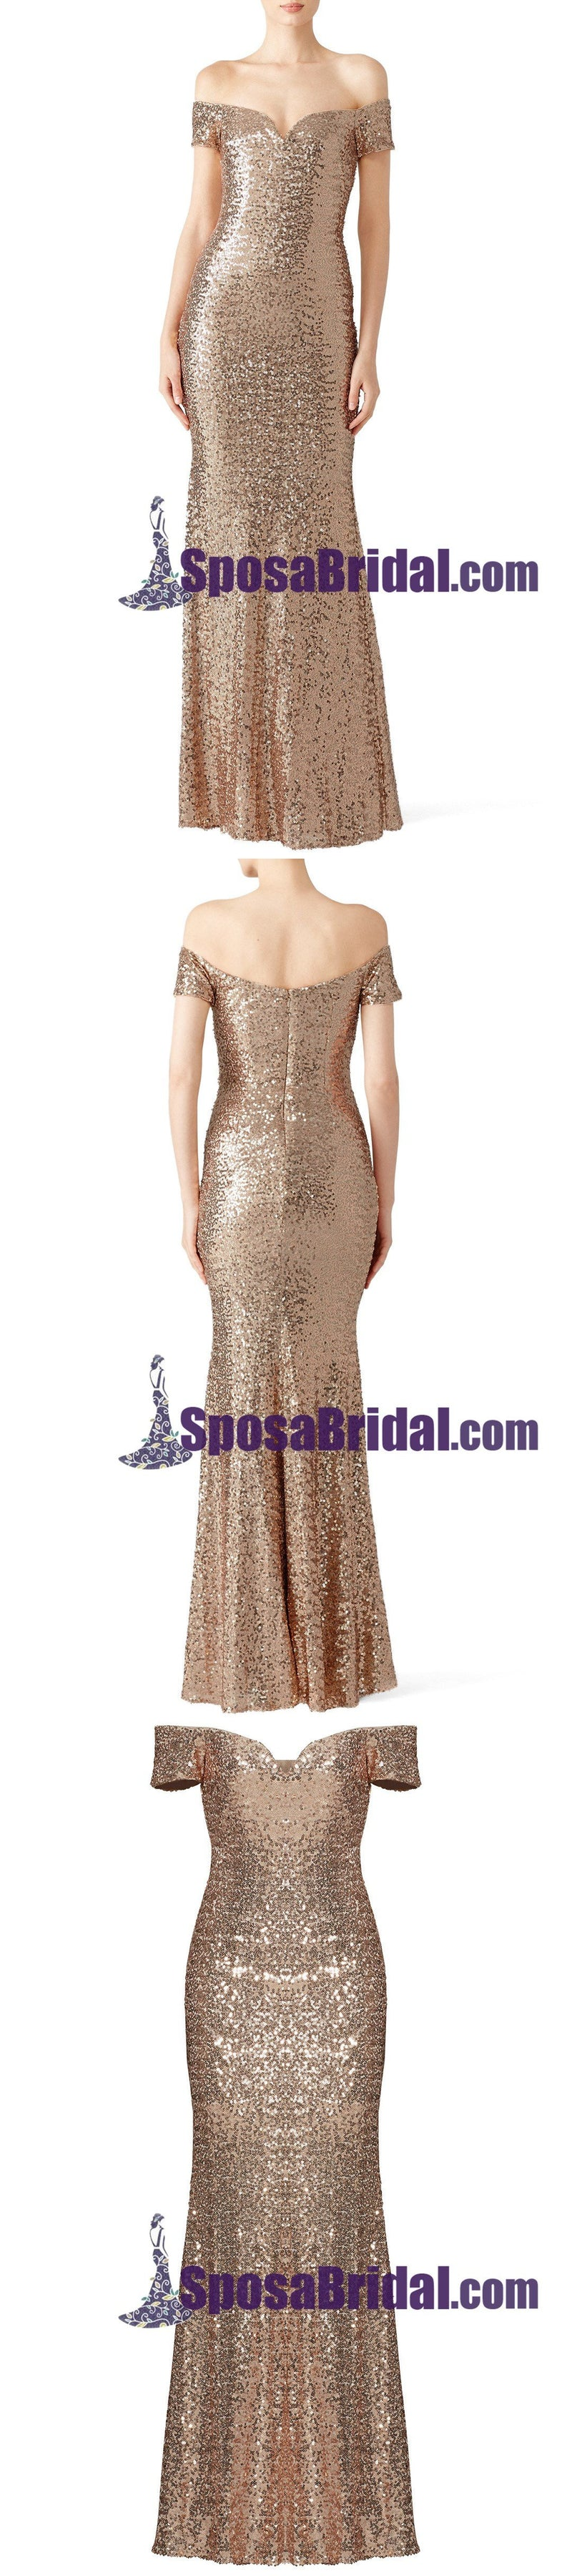 Sequin Mermaid Off Shoulder Long Bridesmaid Dresses, Sparkly Elegant Formal Popular Prom dresses, WG244